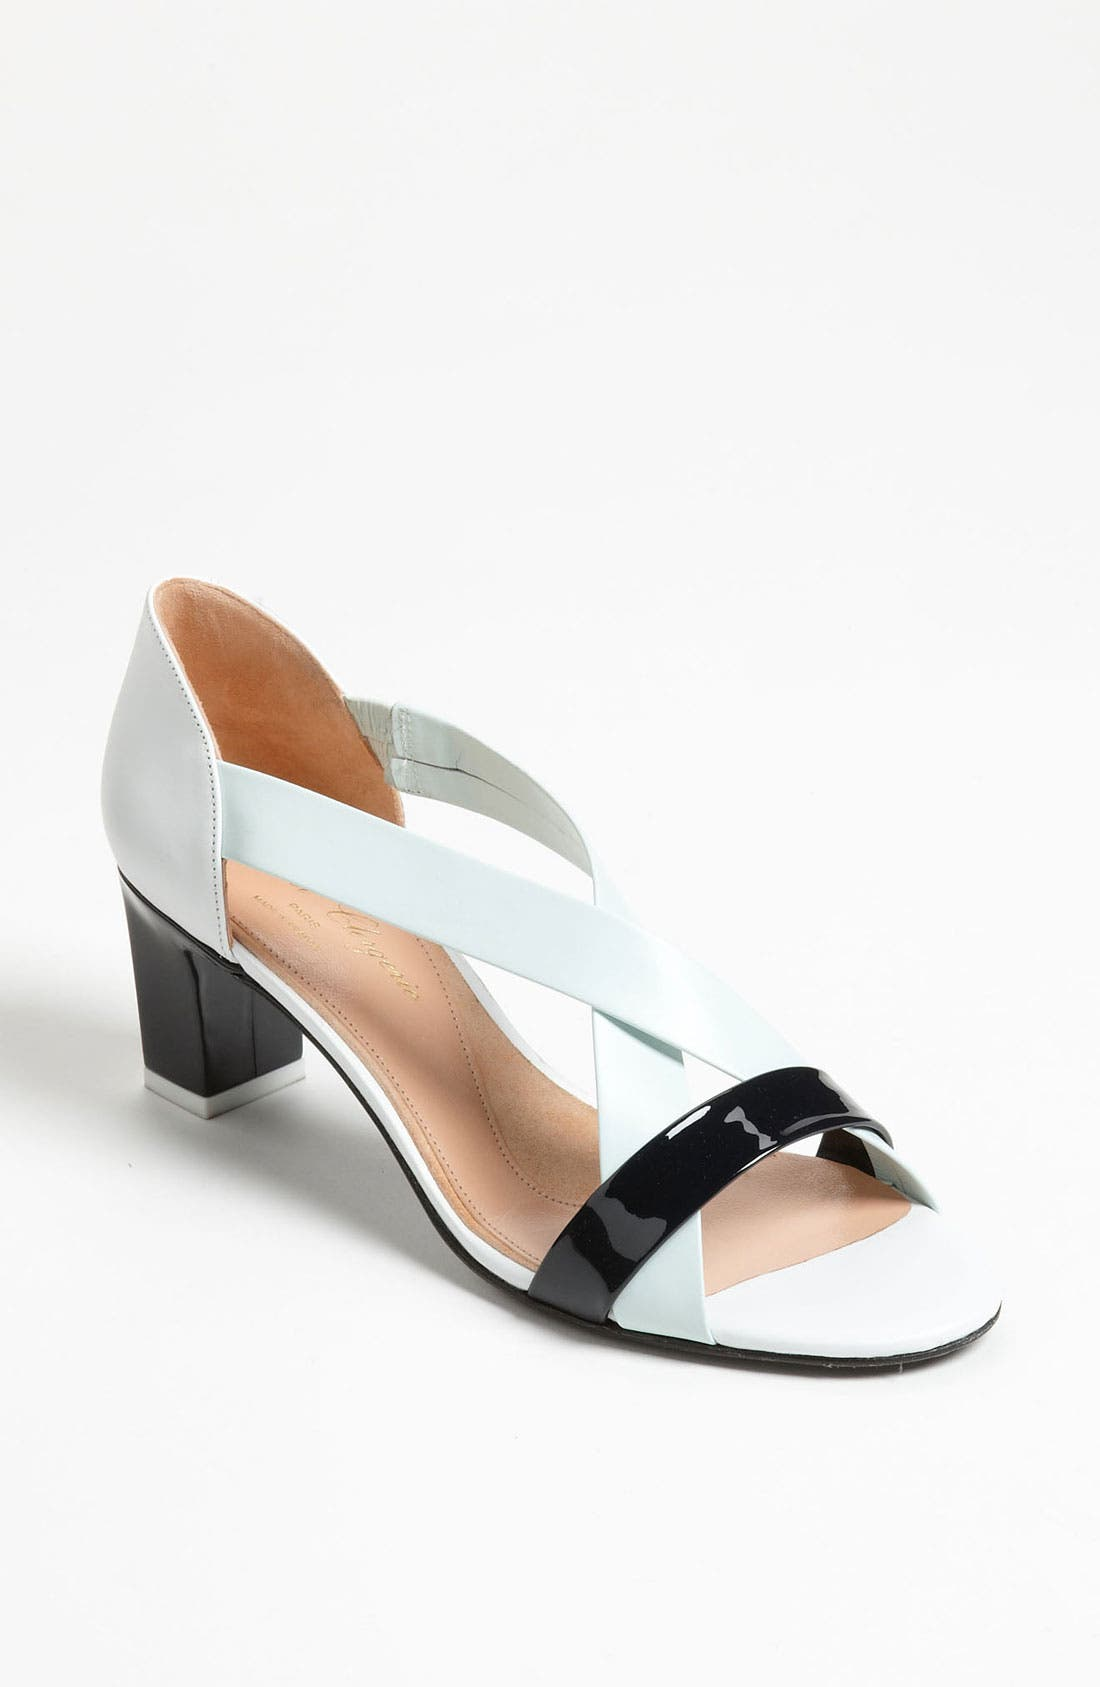 Alternate Image 1 Selected - Robert Clergerie 'Orano' Sandal